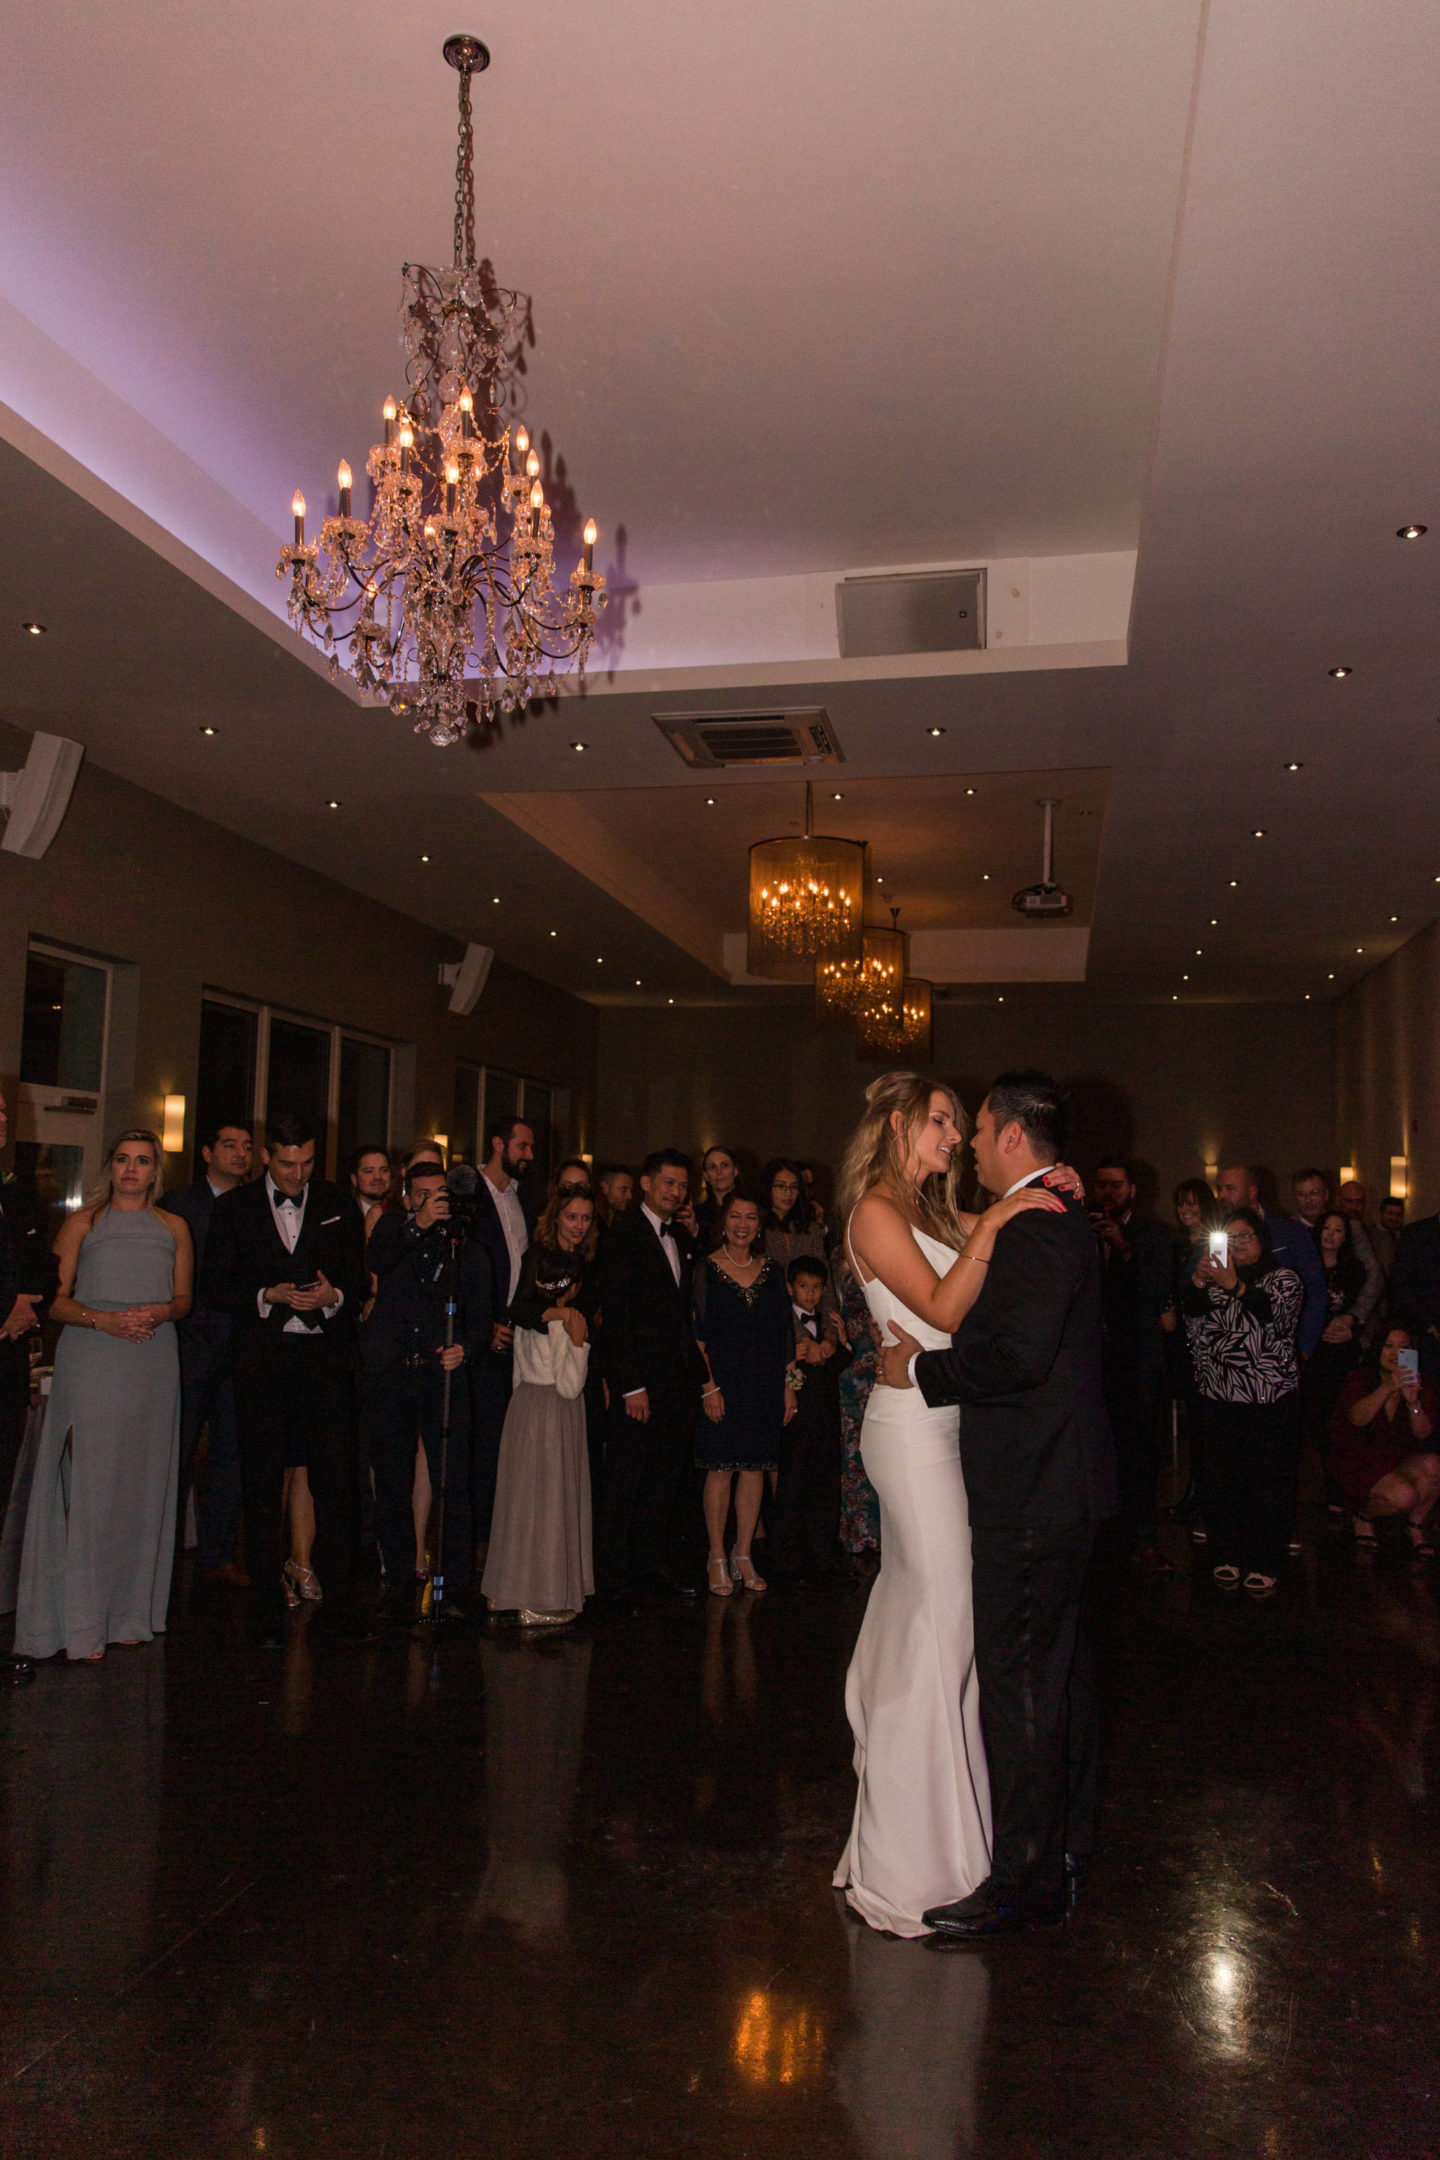 le belvedere first dance bride and groom wedding